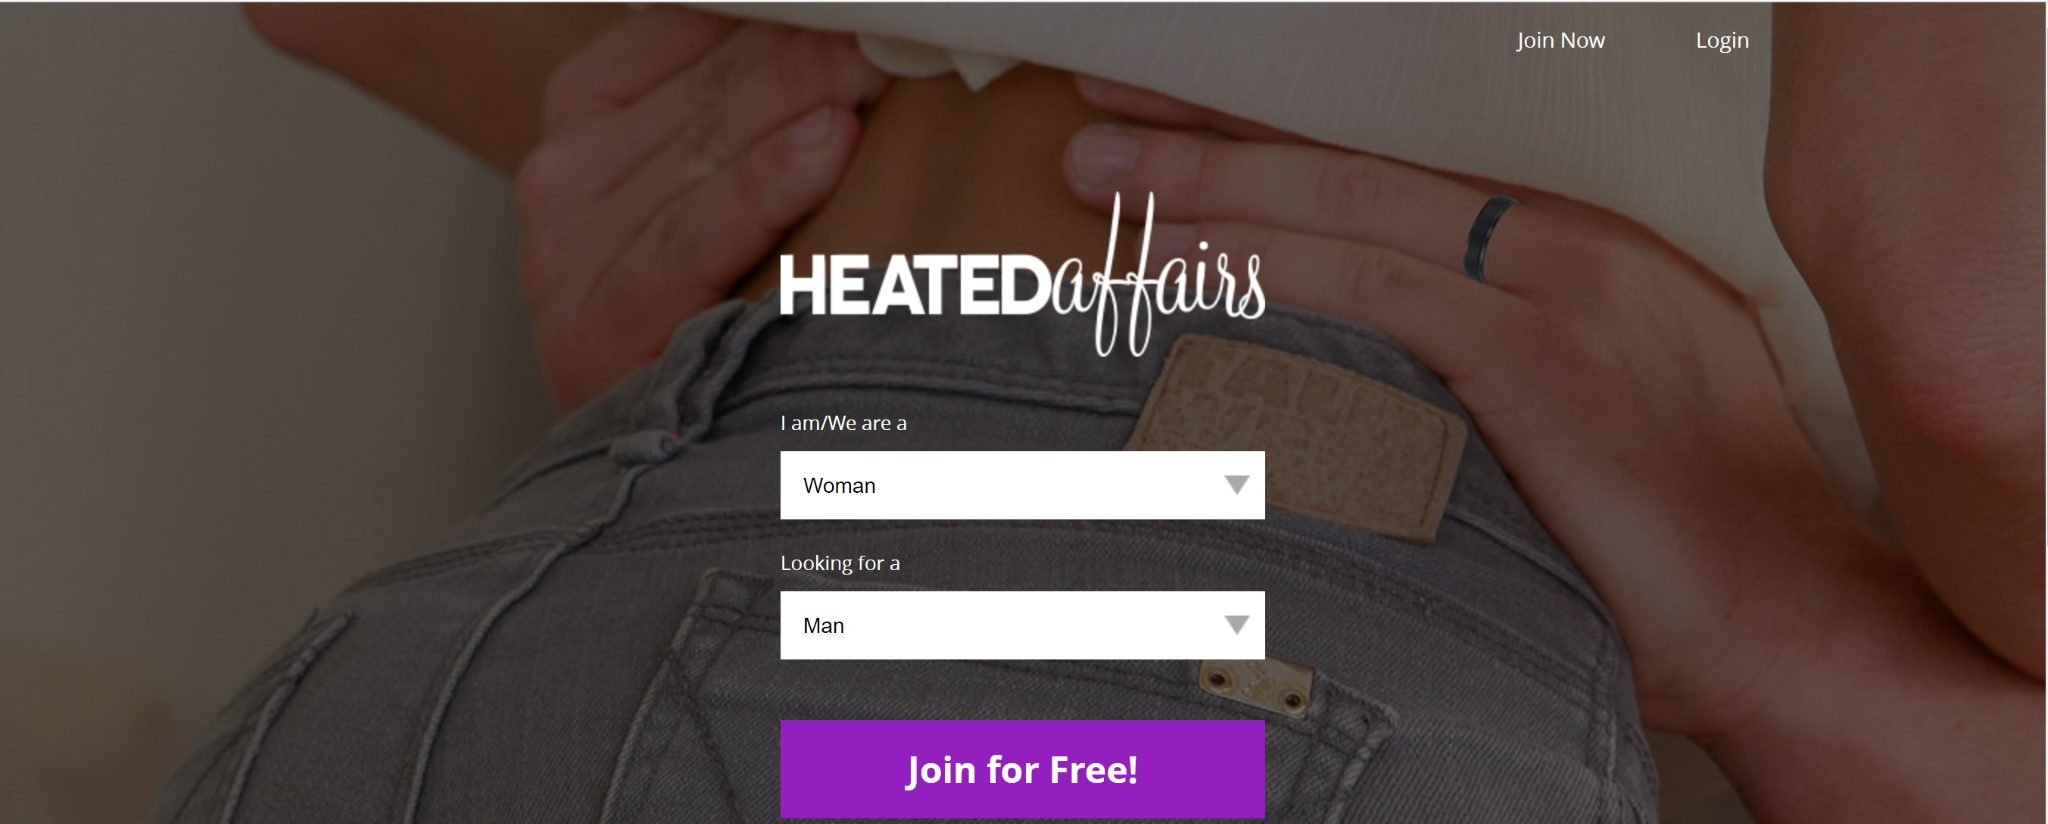 Quick and easy sign-up